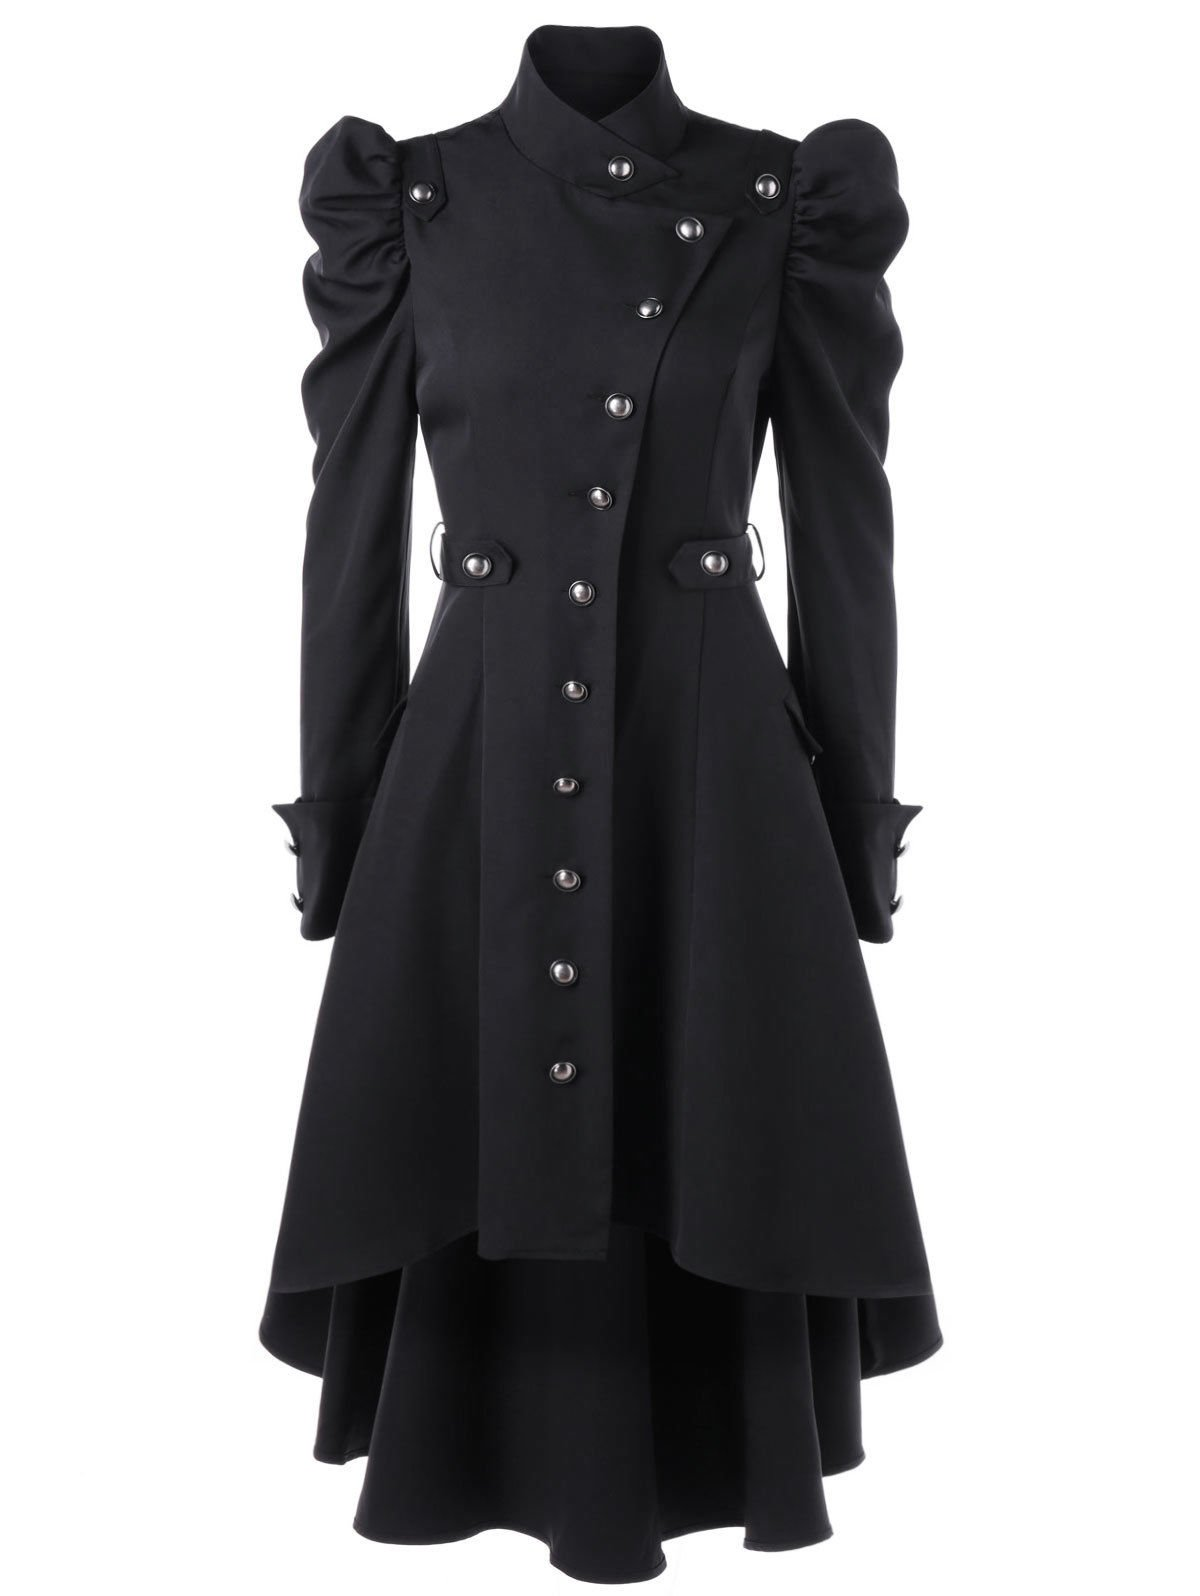 Beebeauty Gothic Vintage Womens Steampunk Victorian Swallow Tail Long Trench Coat Jacket 3